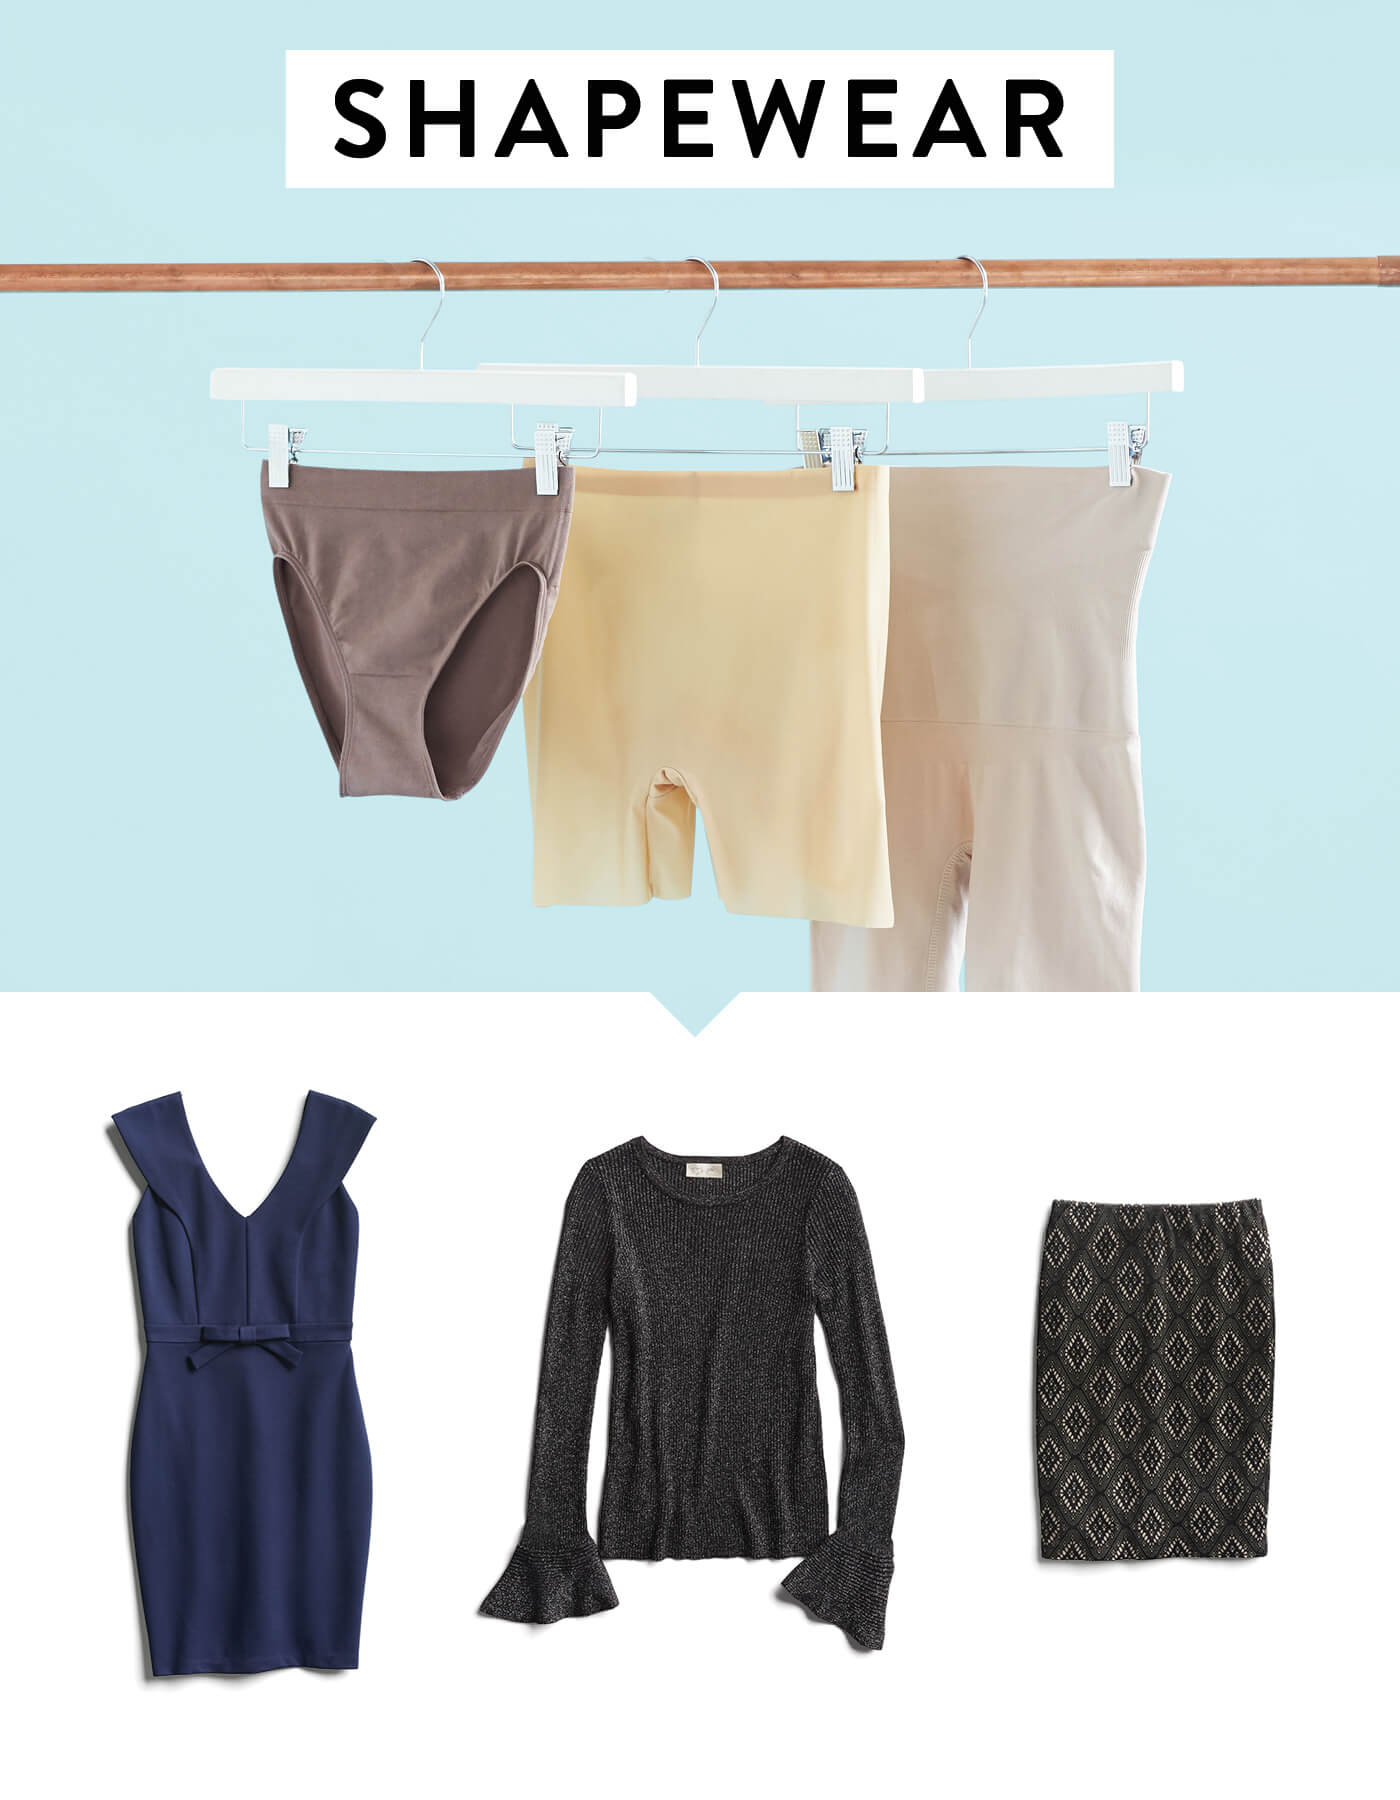 How to Wear Shapewear